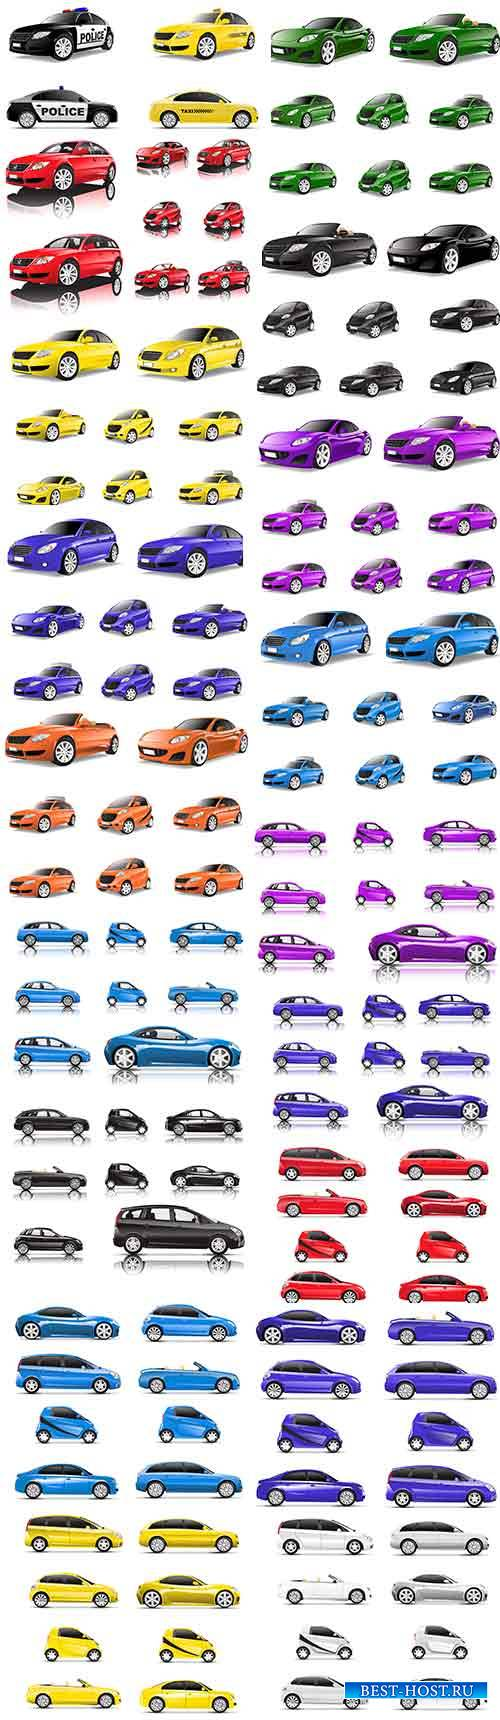 Автомобили в векторе / Cars in vector